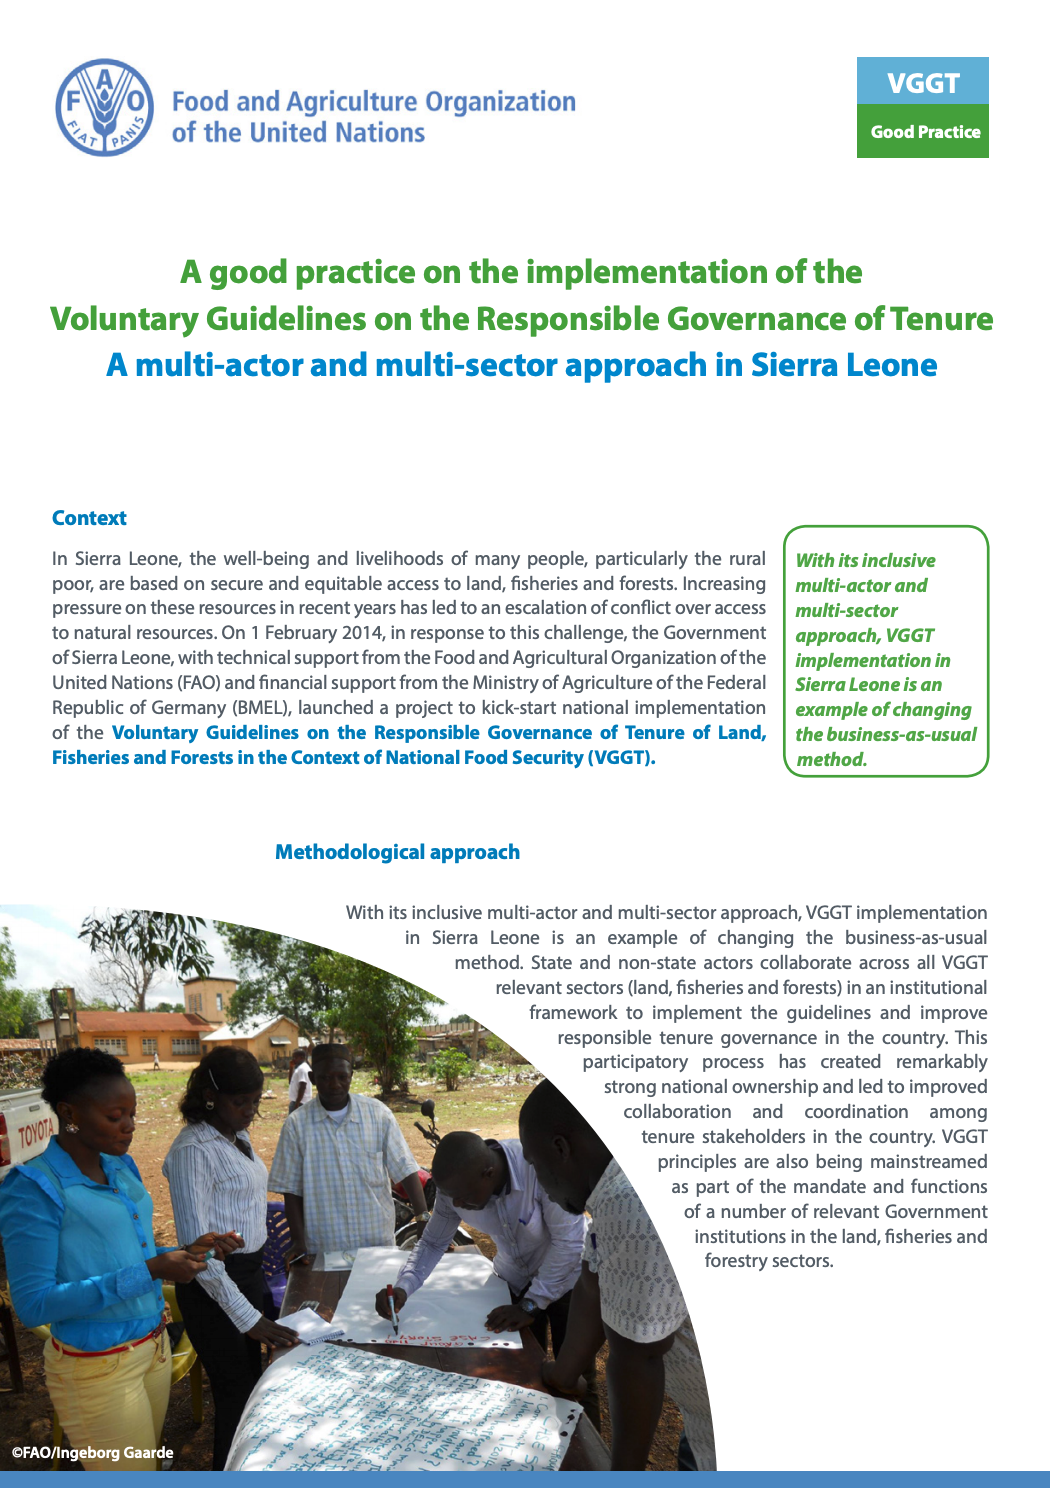 Screenshot 2019-02-14 at 14.01.45.A good practice on the implementation of the Voluntary Guidelines on the Responsible Governance of Tenure: A multi-actor and multi-sector approach in Sierra Leone cover image